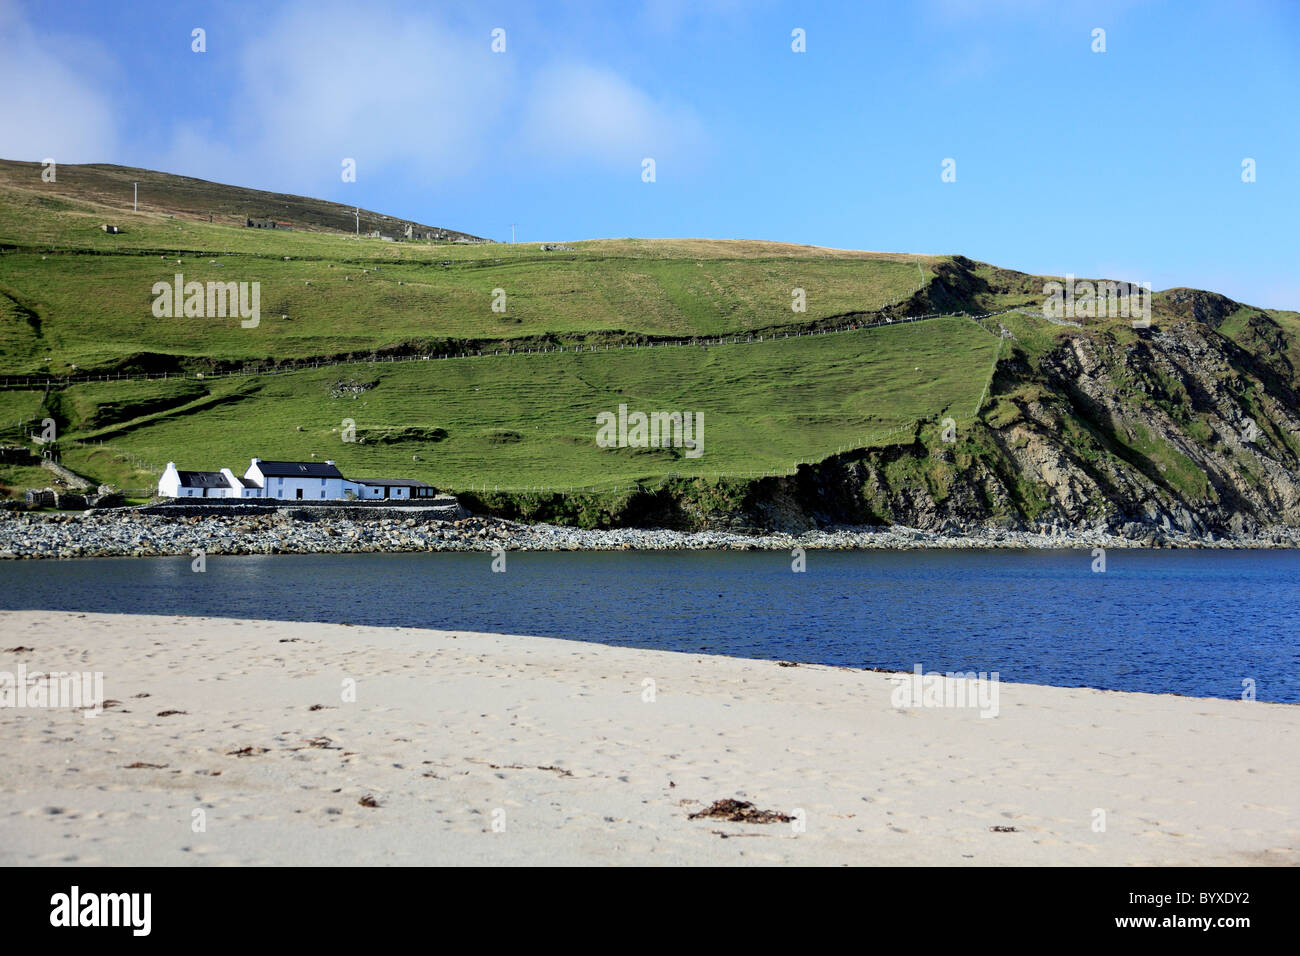 The sandy beach and the bay at Norwick on the north east coast of Unst, Shetland, the most northerly island in Britain - Stock Image